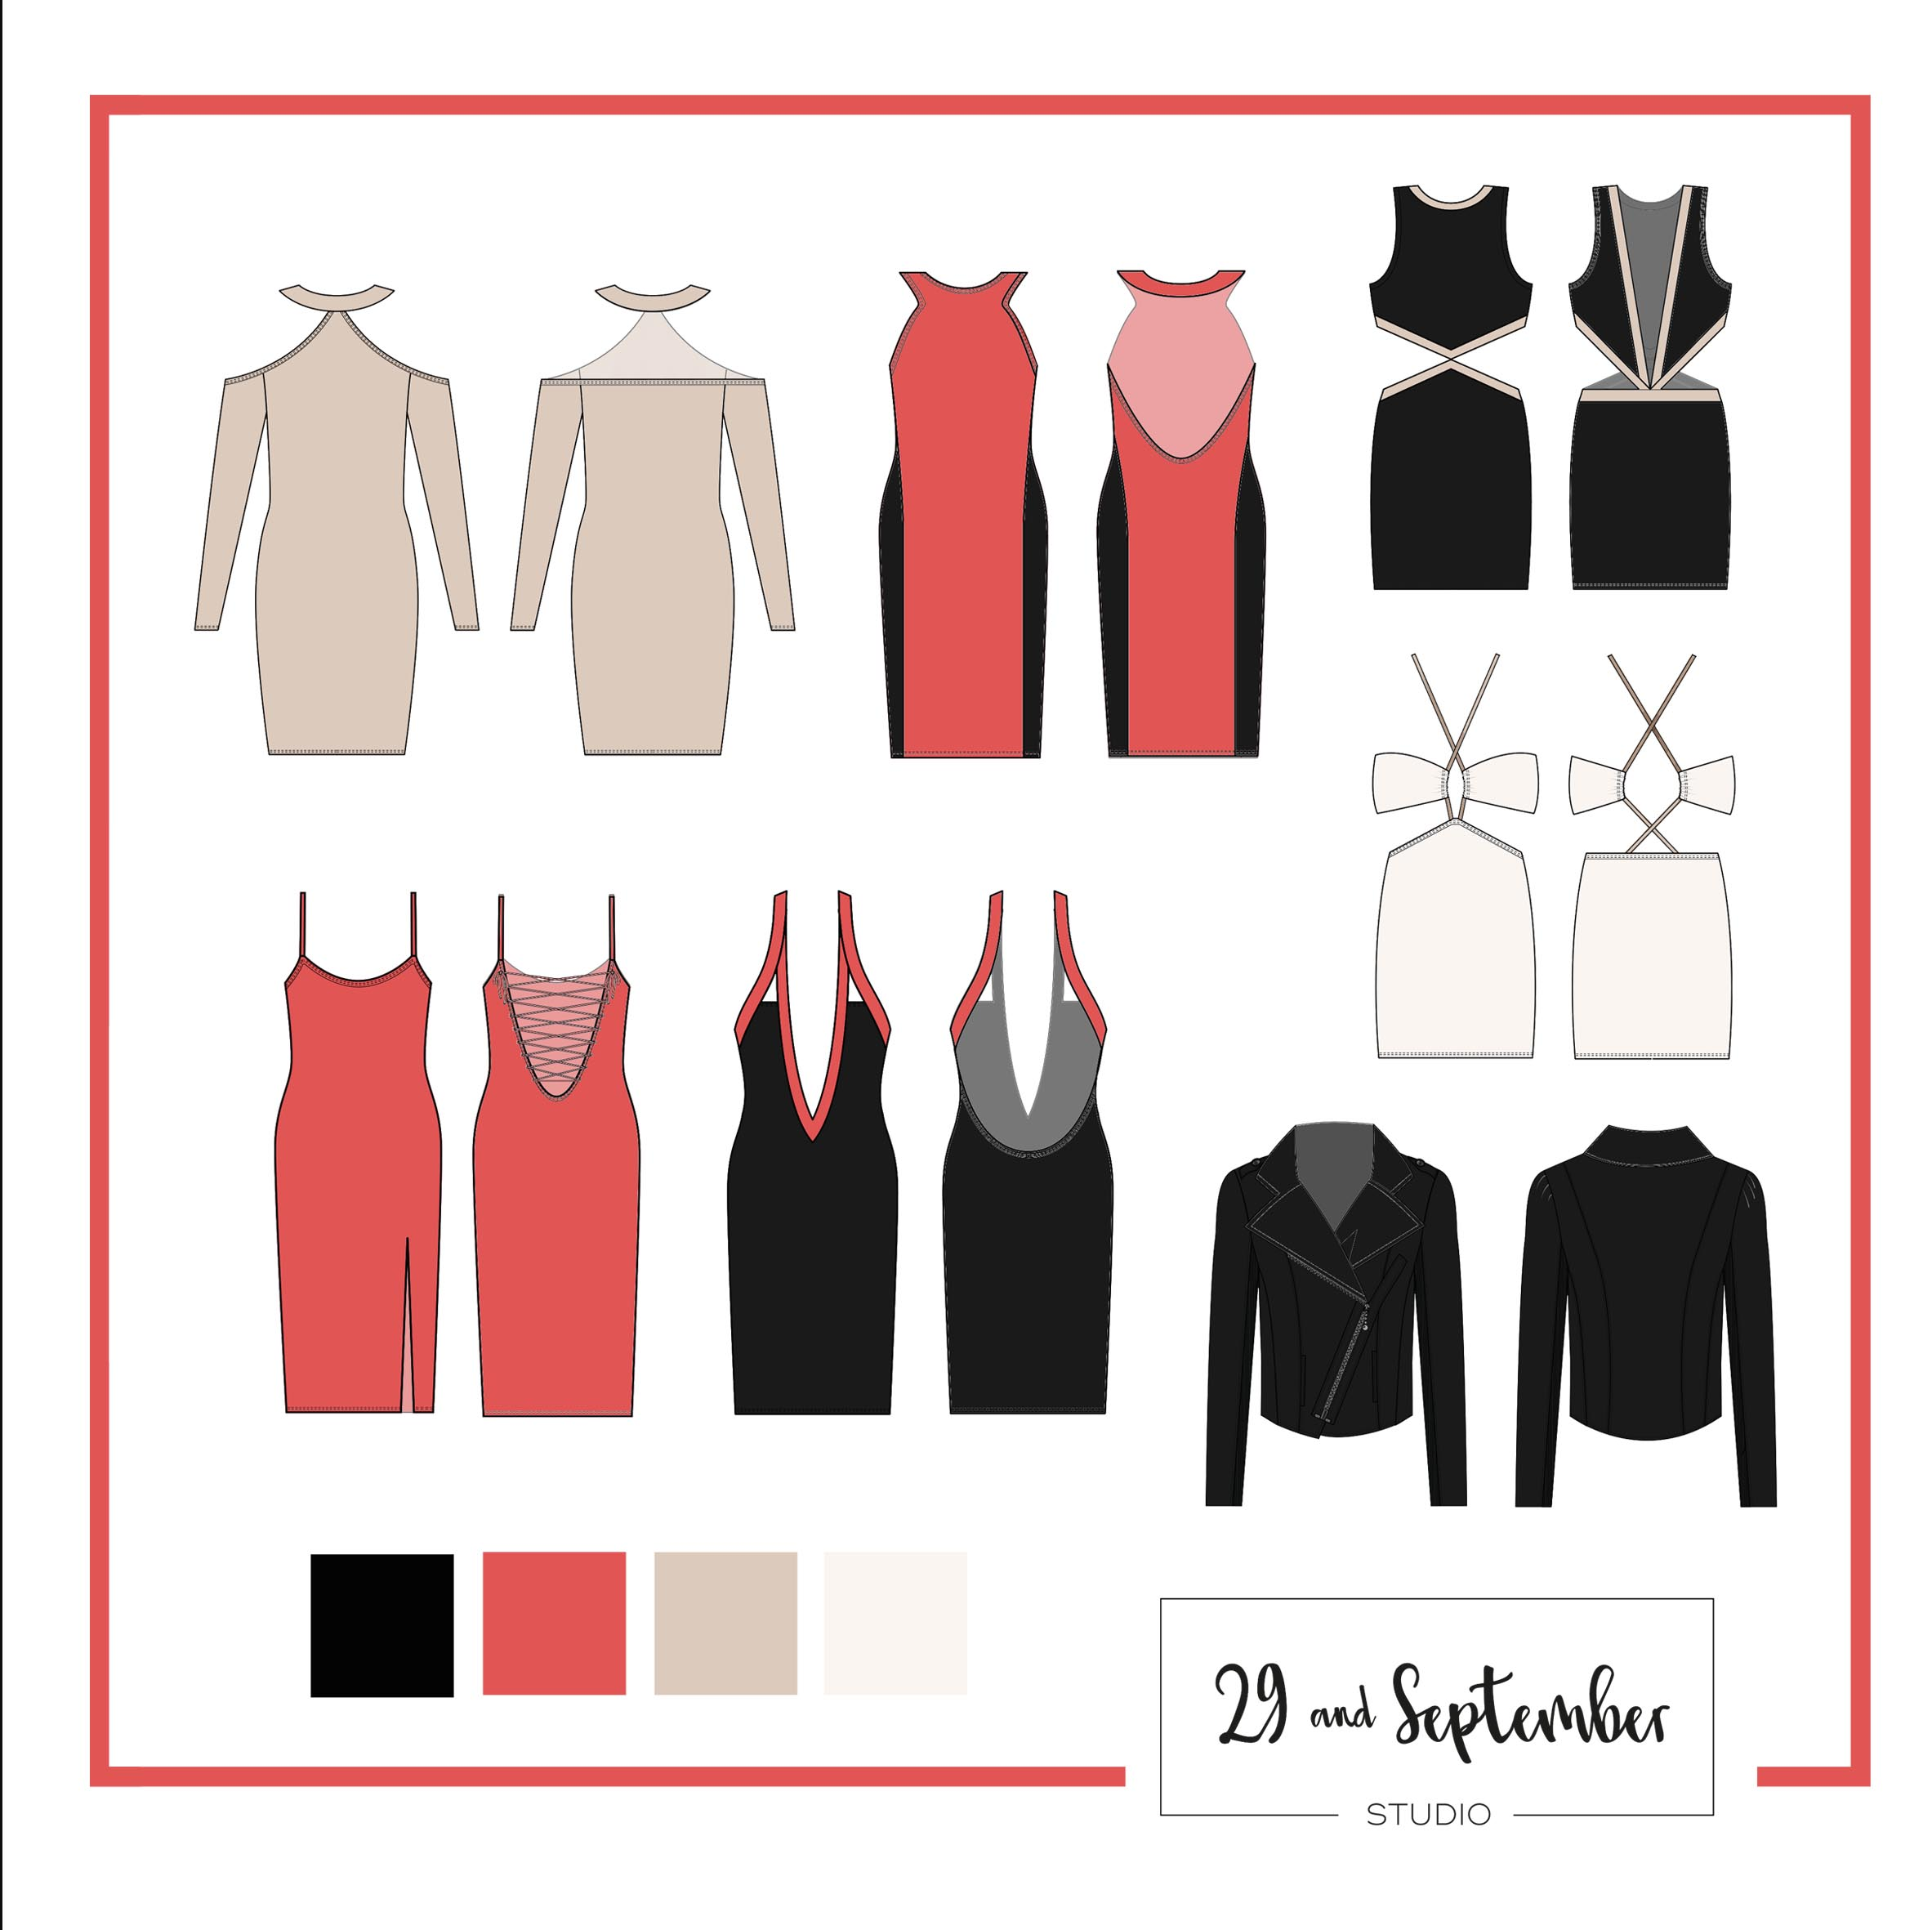 How many items should I have in my fashion range? Starting a fashion label